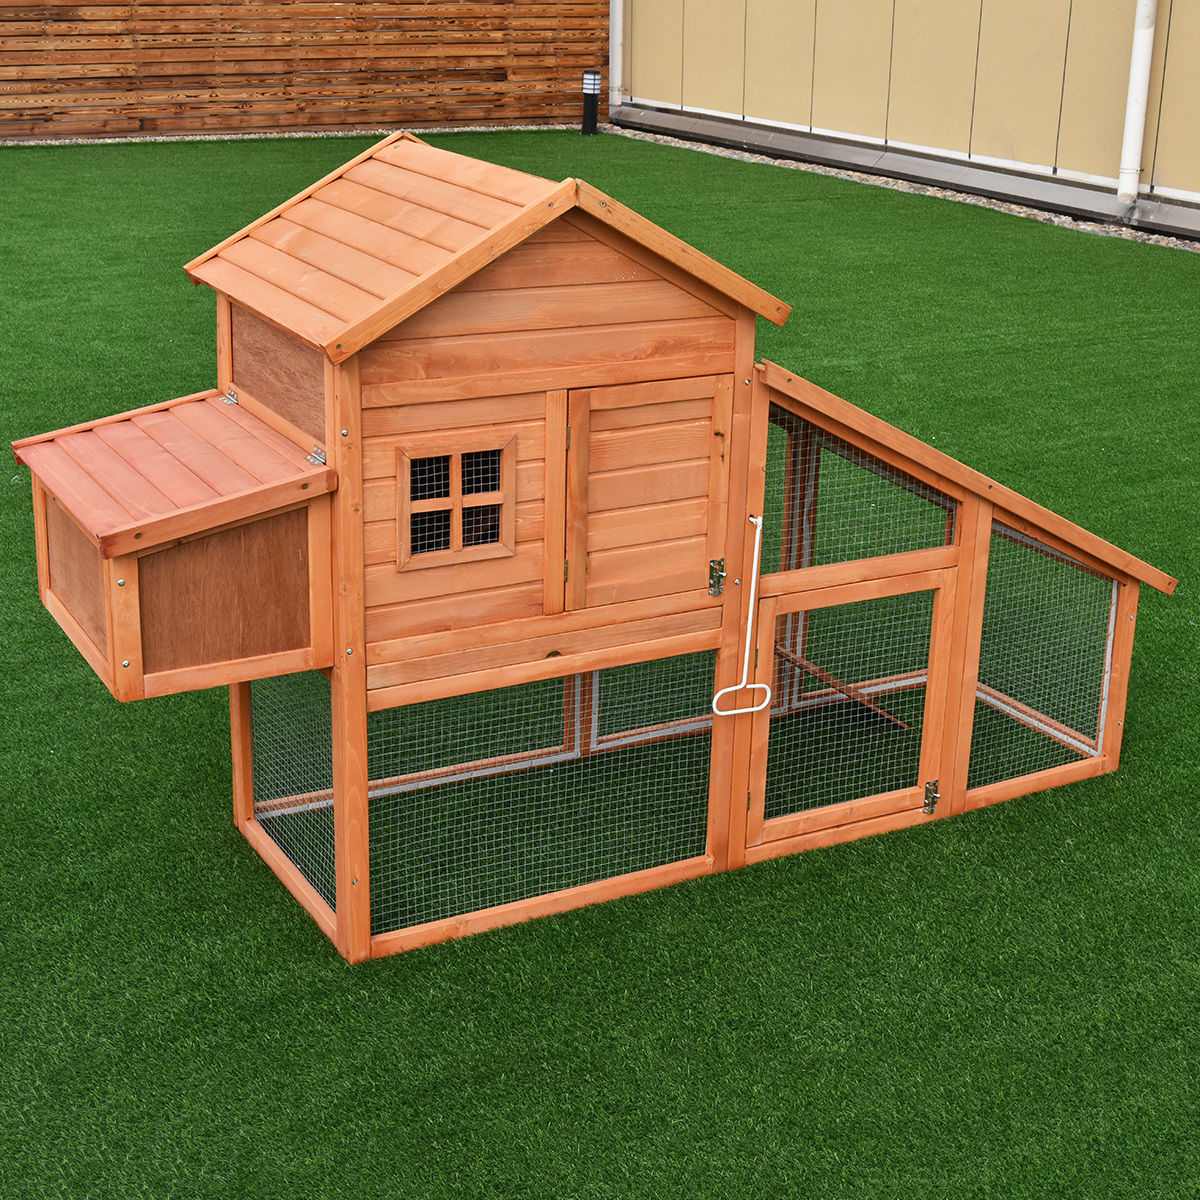 Bon Costway 75u0027u0027 Large Deluxe Wooden Chicken Coop Backyard Nest Box Hen House  Hutch W